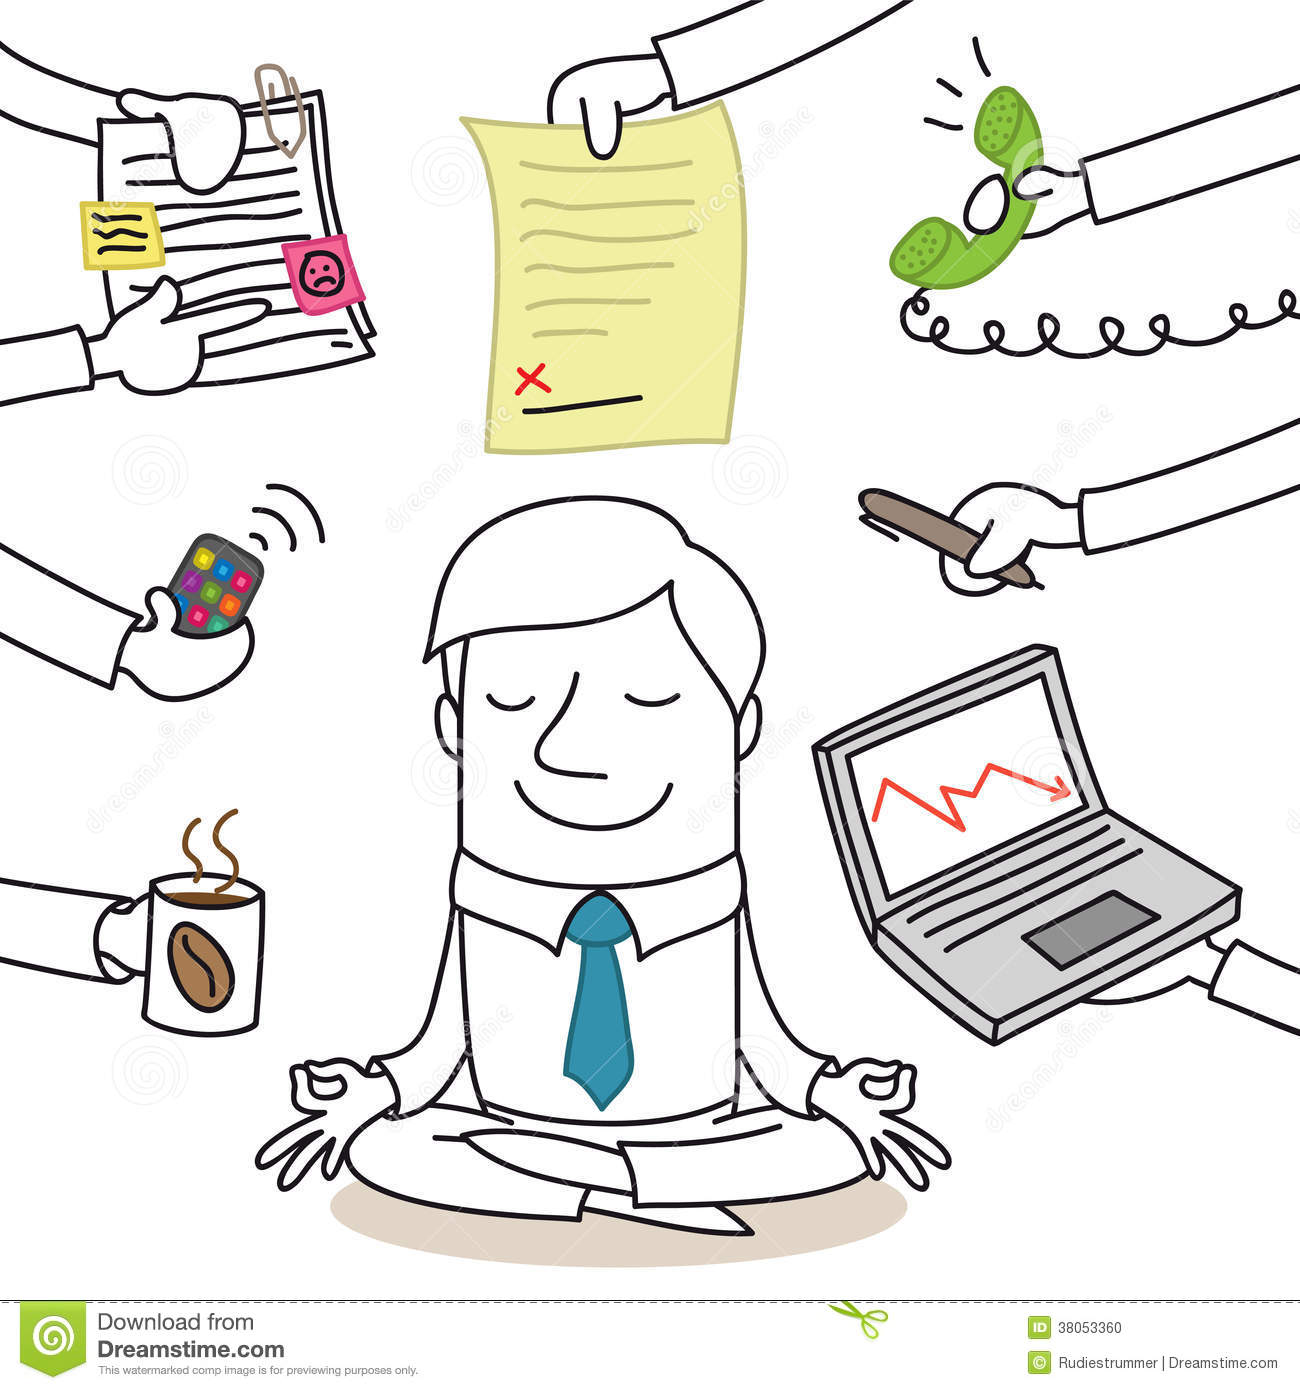 Small Space Organization Crop In Style also Work Etiquette Guidelines besides Business Lunch Etiquette further Stock Photo Calm Businessman Doing Yoga Paperwork Surrounding Image38053360 in addition Funny Bathroom Signs. on office cube etiquette